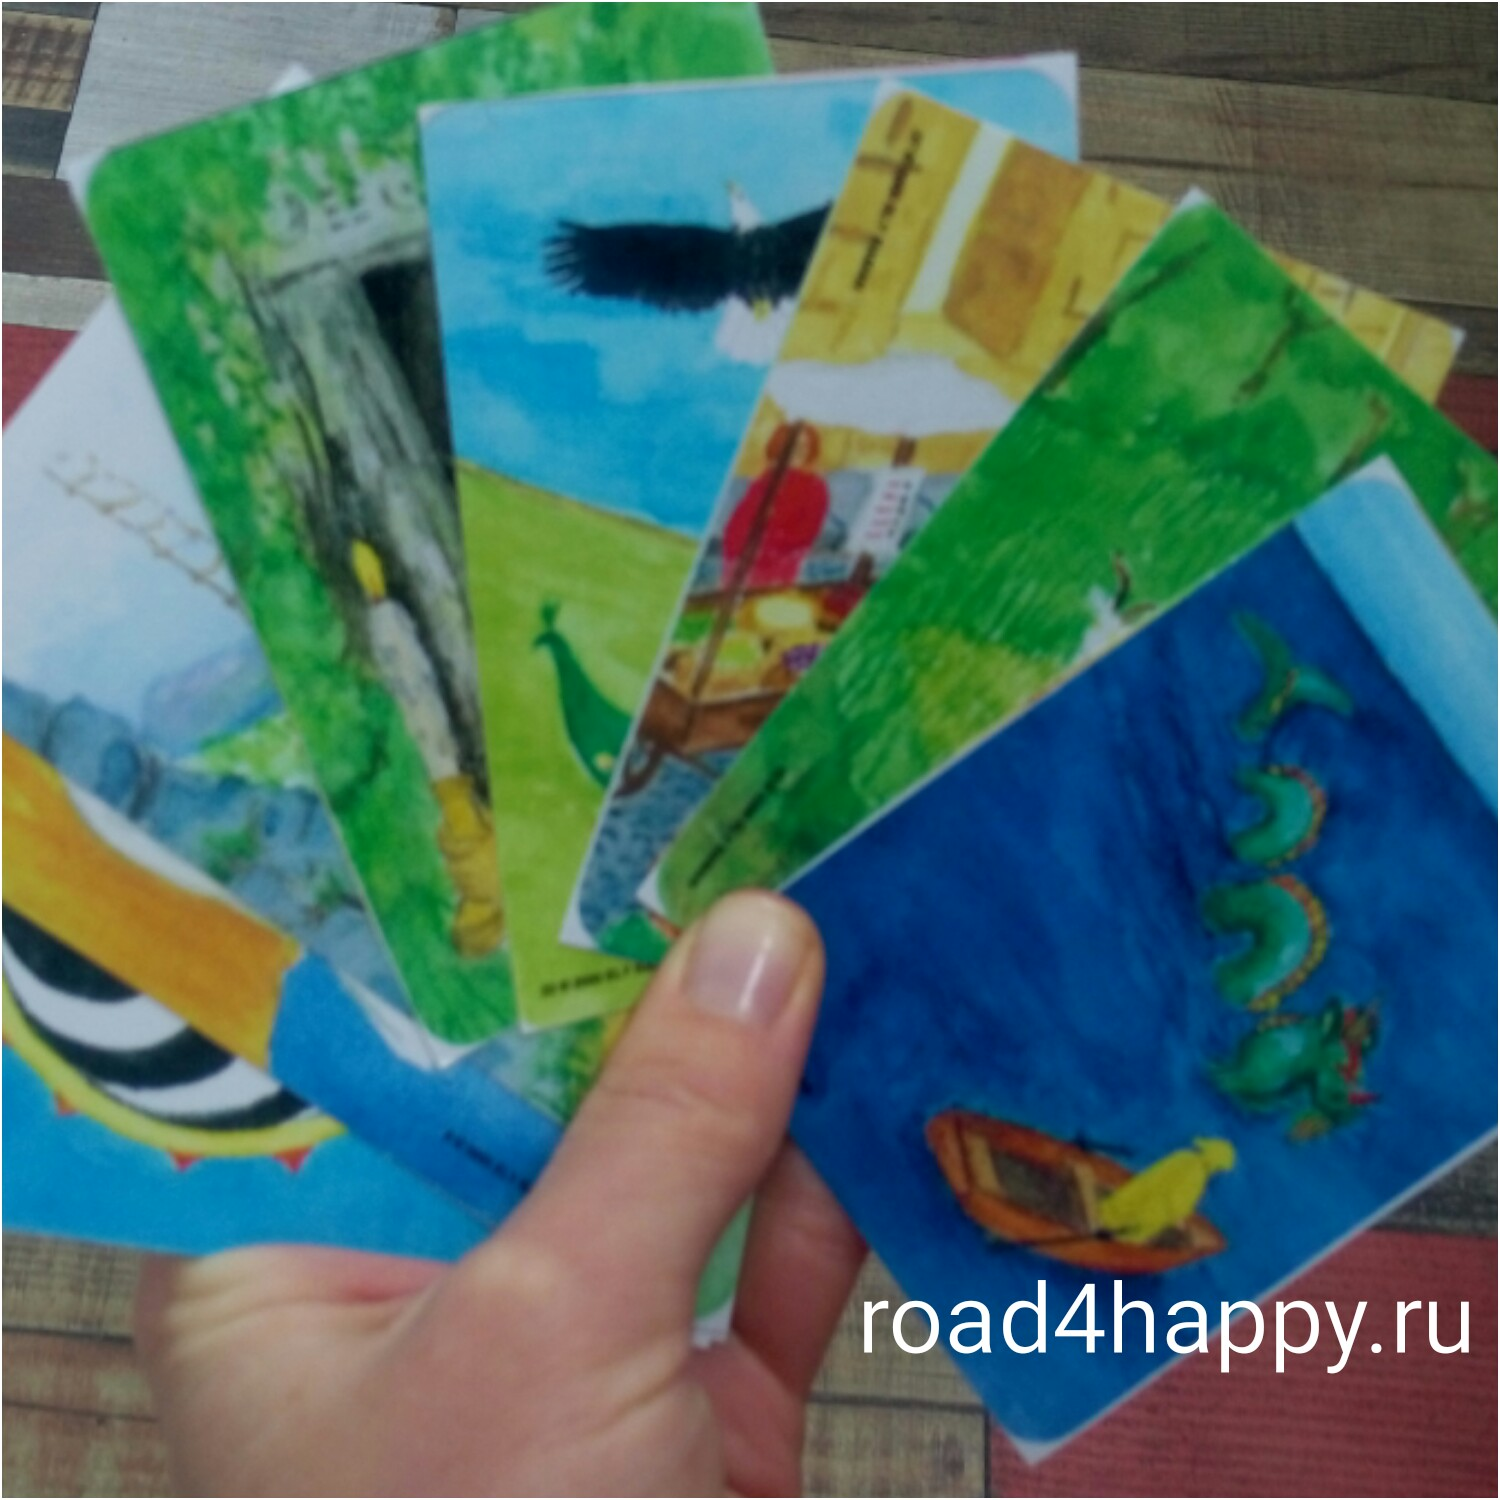 road4happy.ru